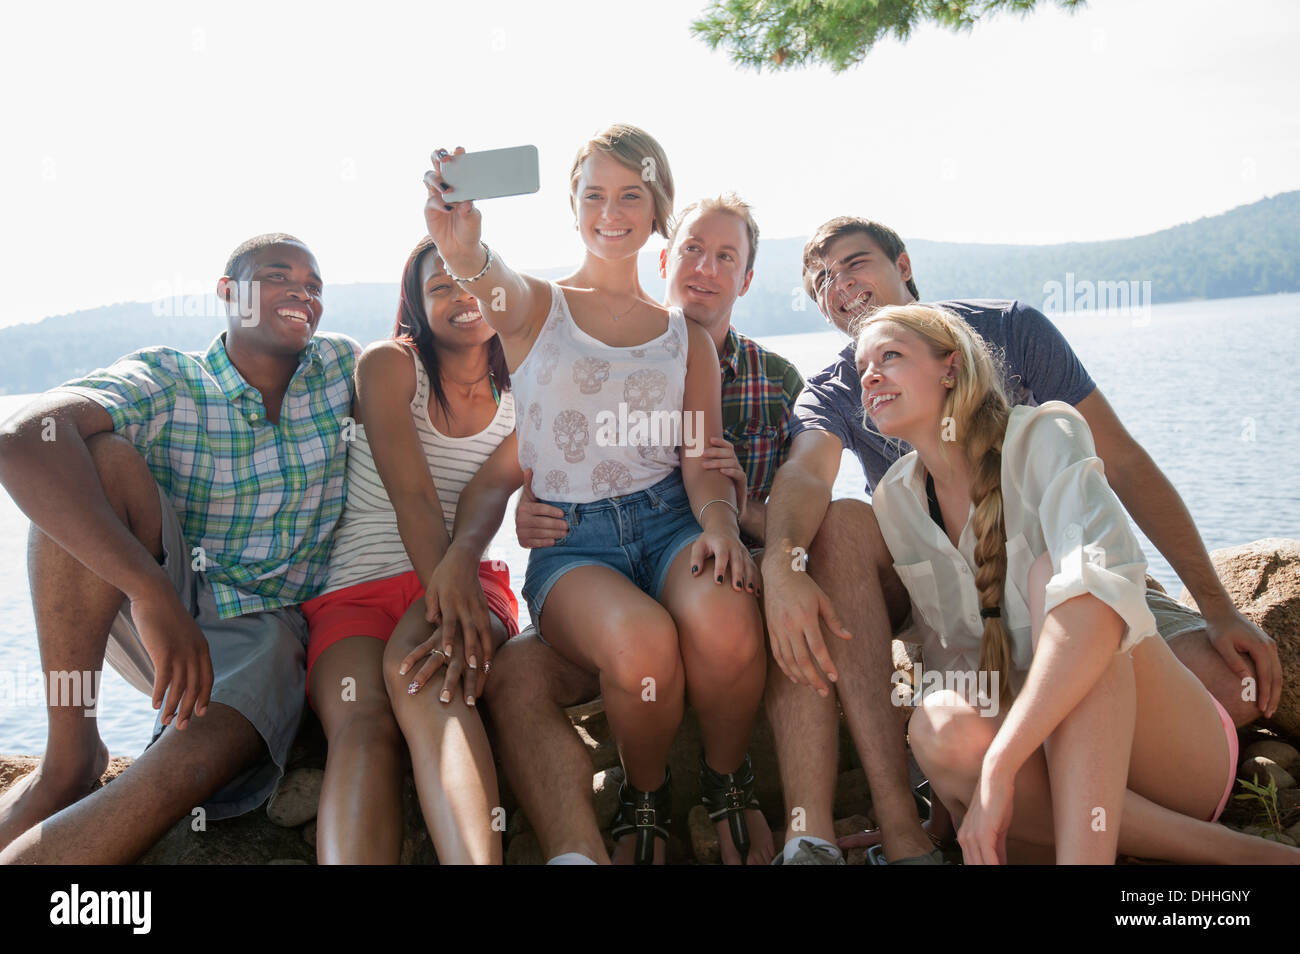 Group of friends photographing themselves - Stock Image